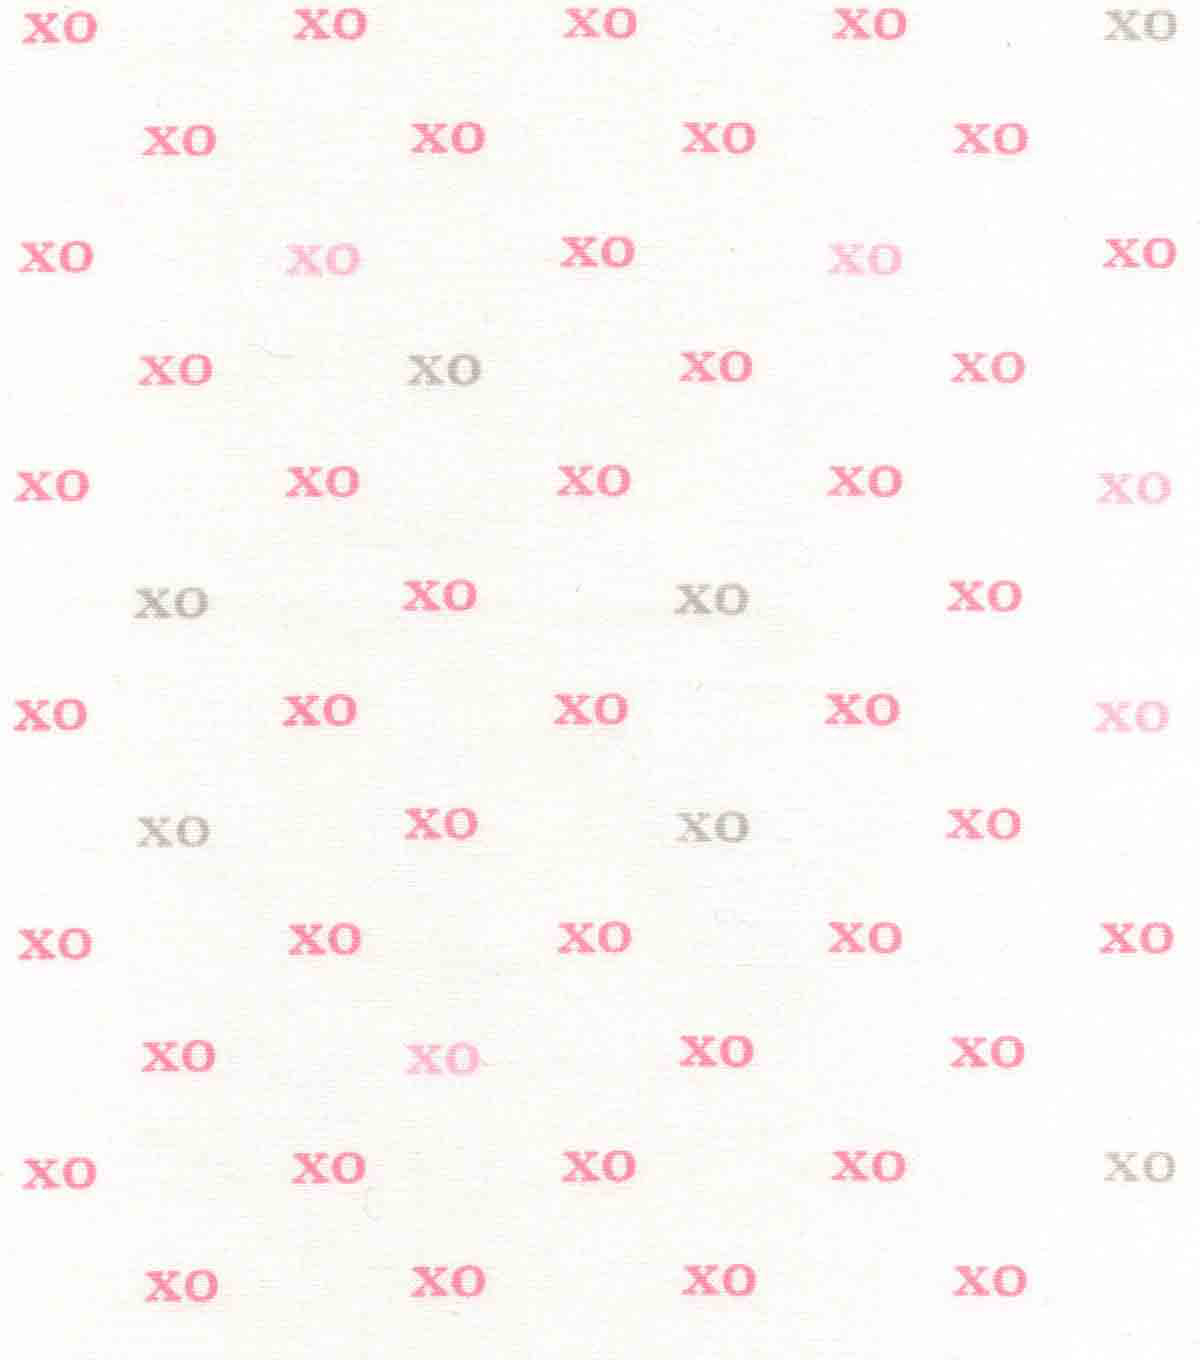 Nursery Cotton Fabric 43\u0027\u0027-Xo Xo